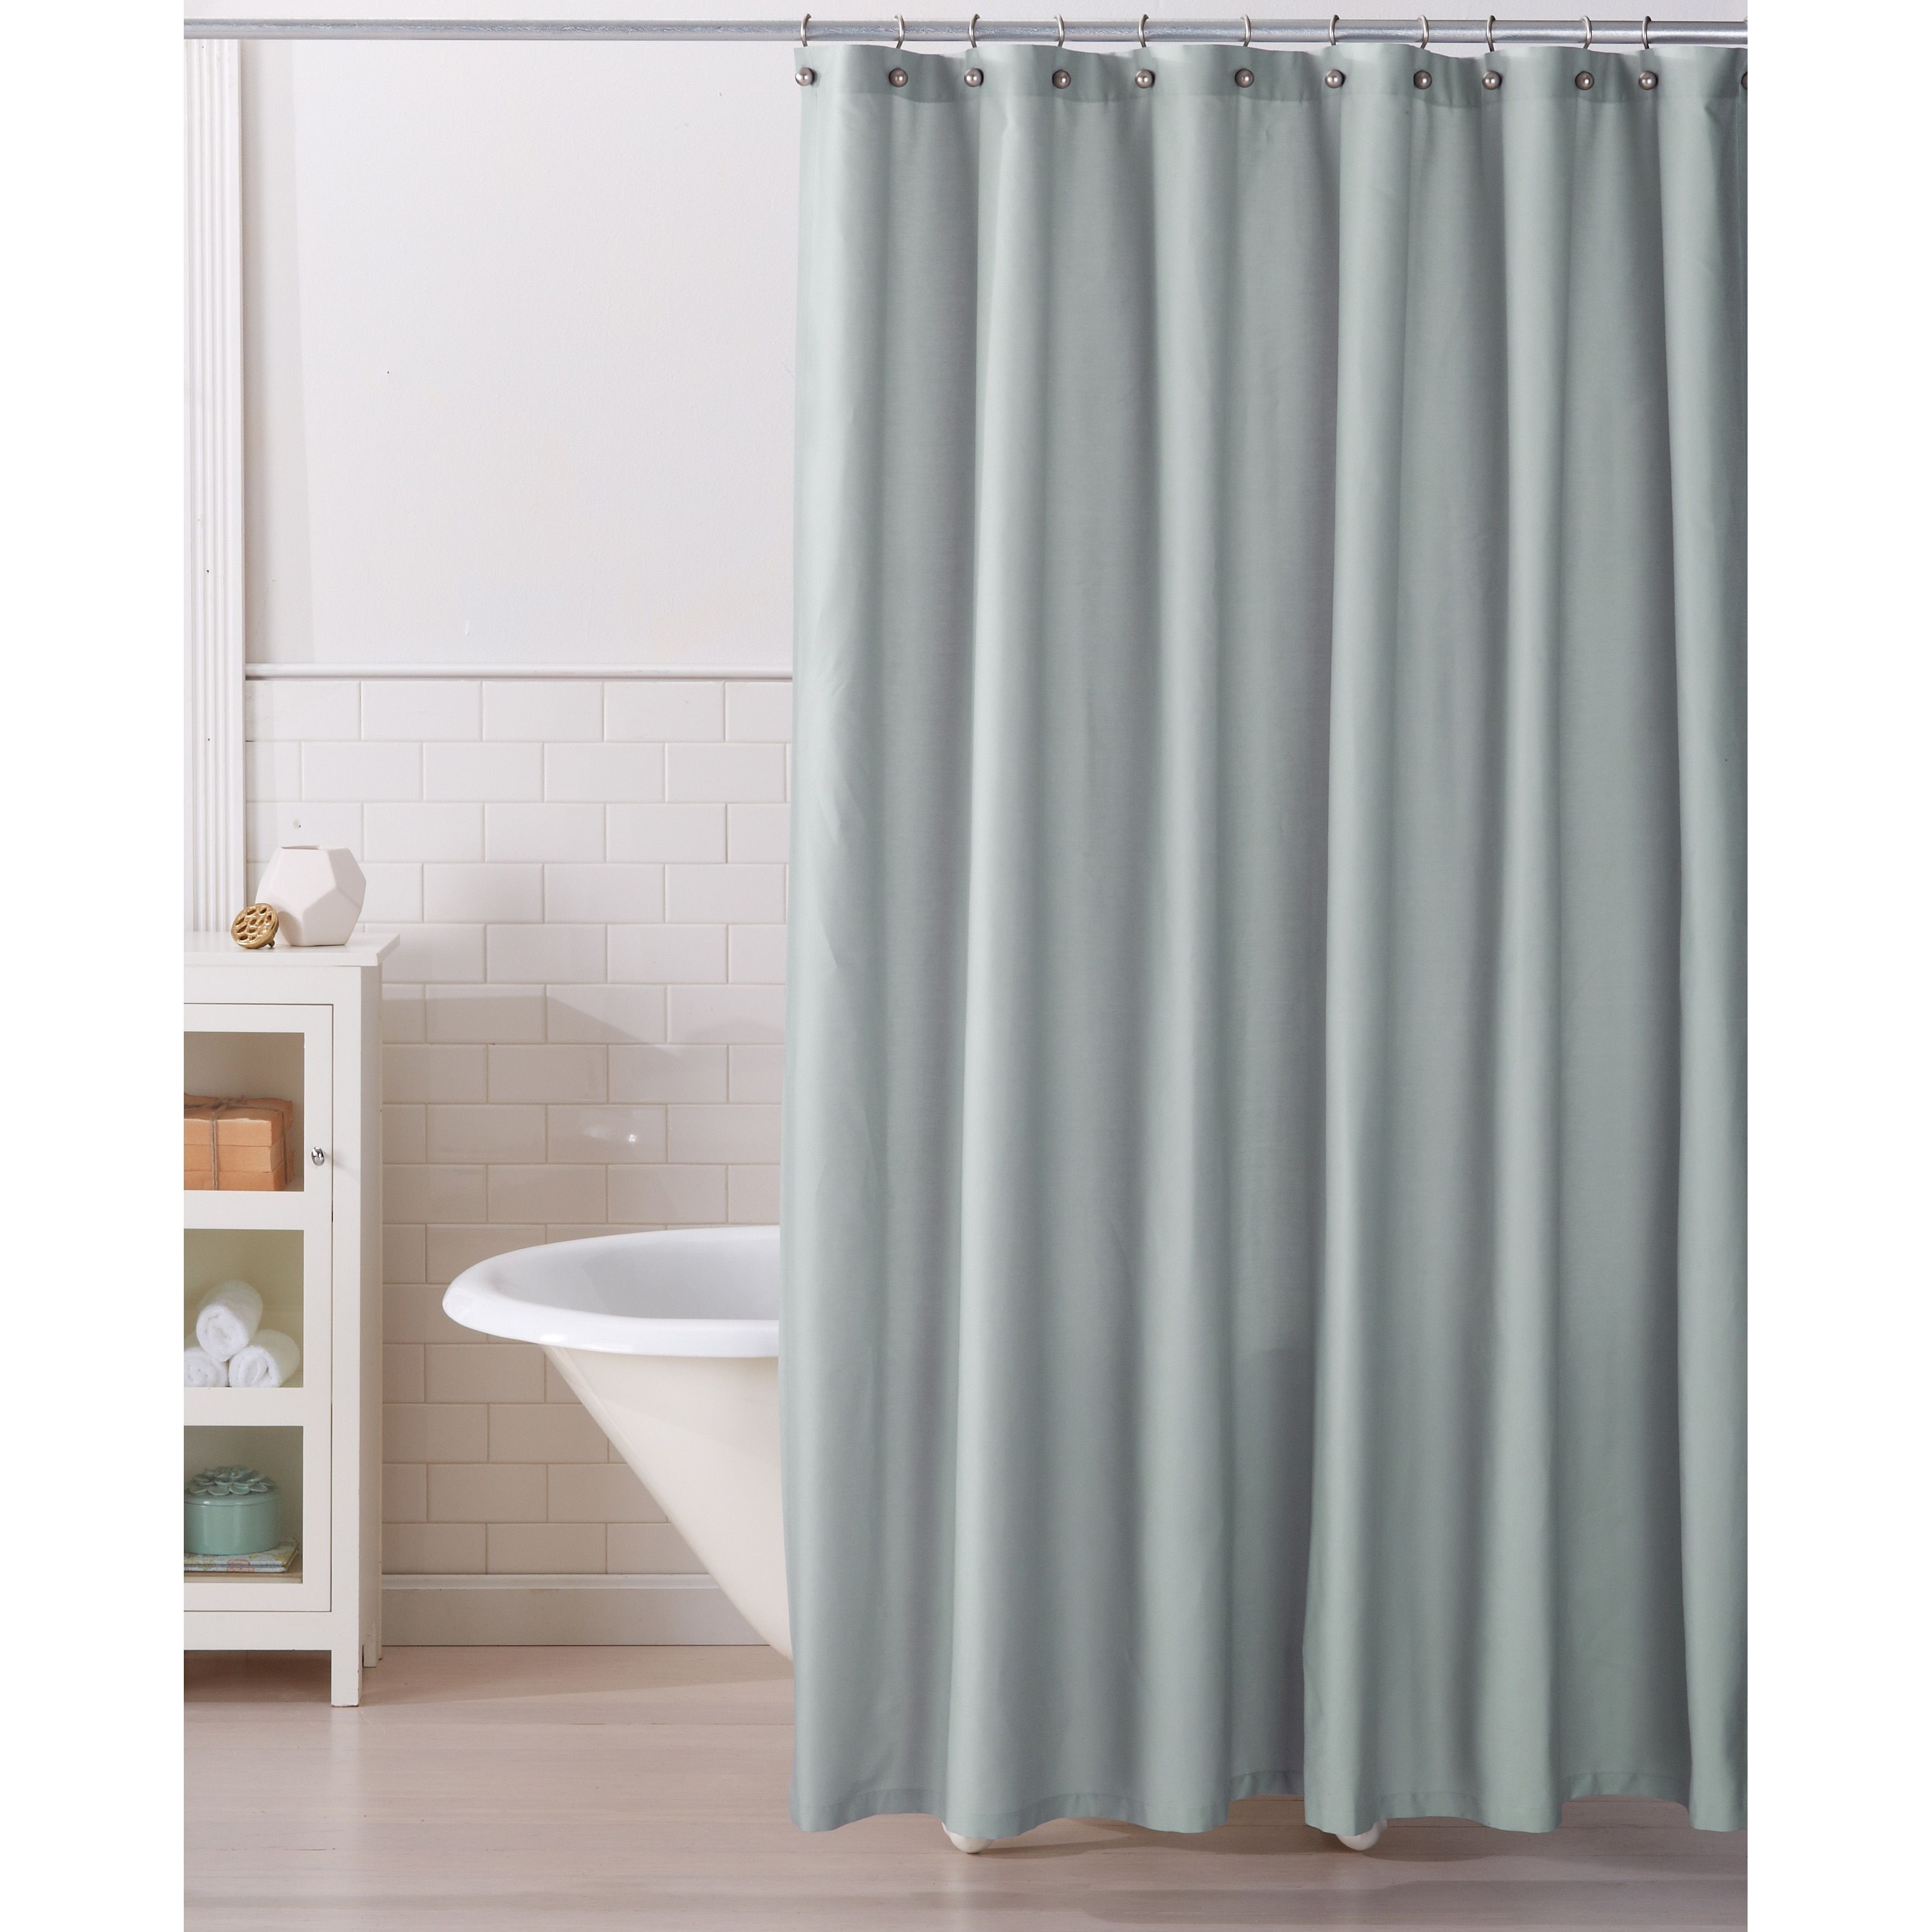 Home fashion designs monroe heavyweight shower curtain products